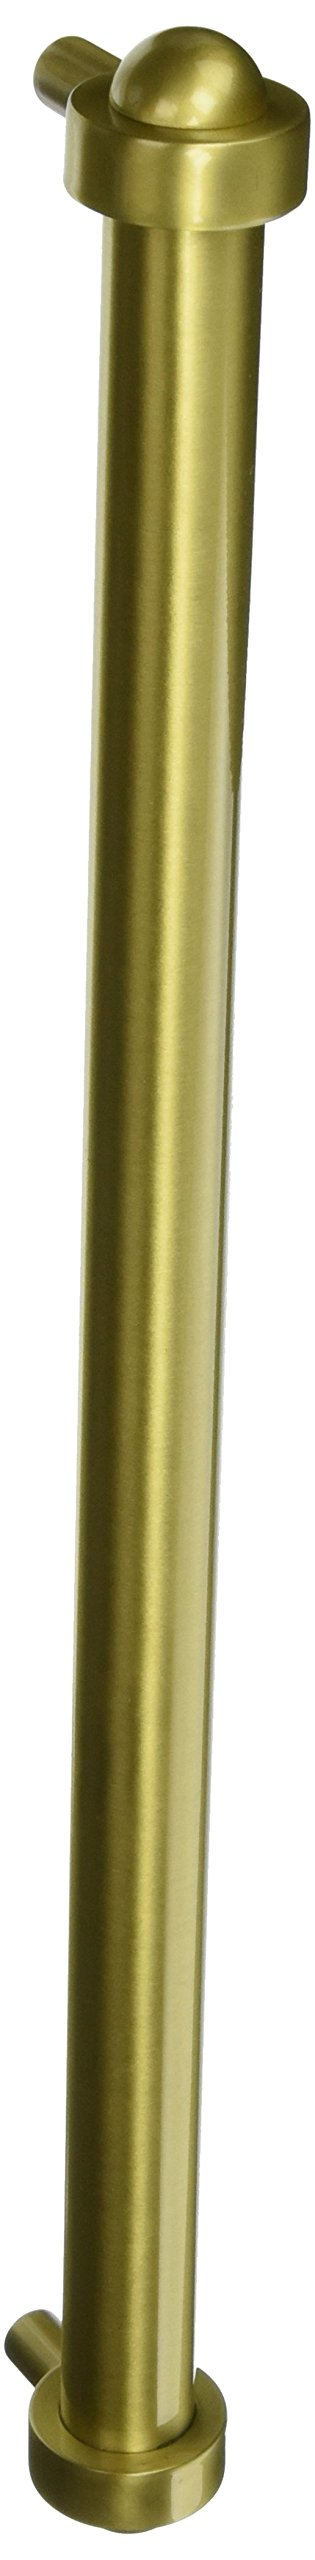 Allied Brass 402A-RP-BBR Refrigerator Pull, 18'', Brushed Bronze